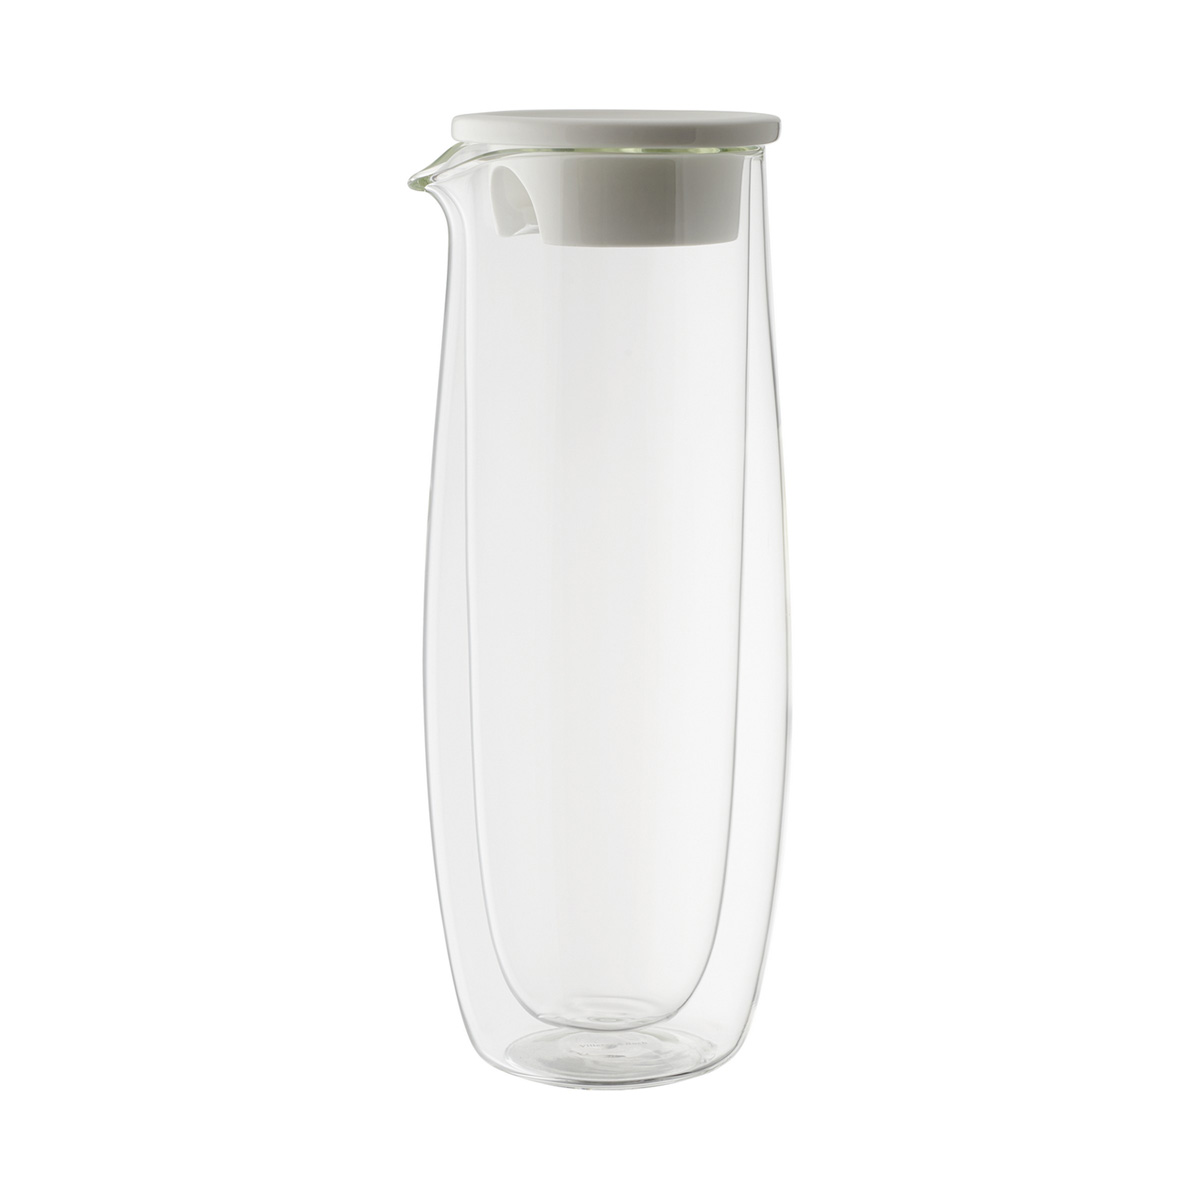 Villeroy and Boch Artesano Hot Beverages Glass Carafe with Lid